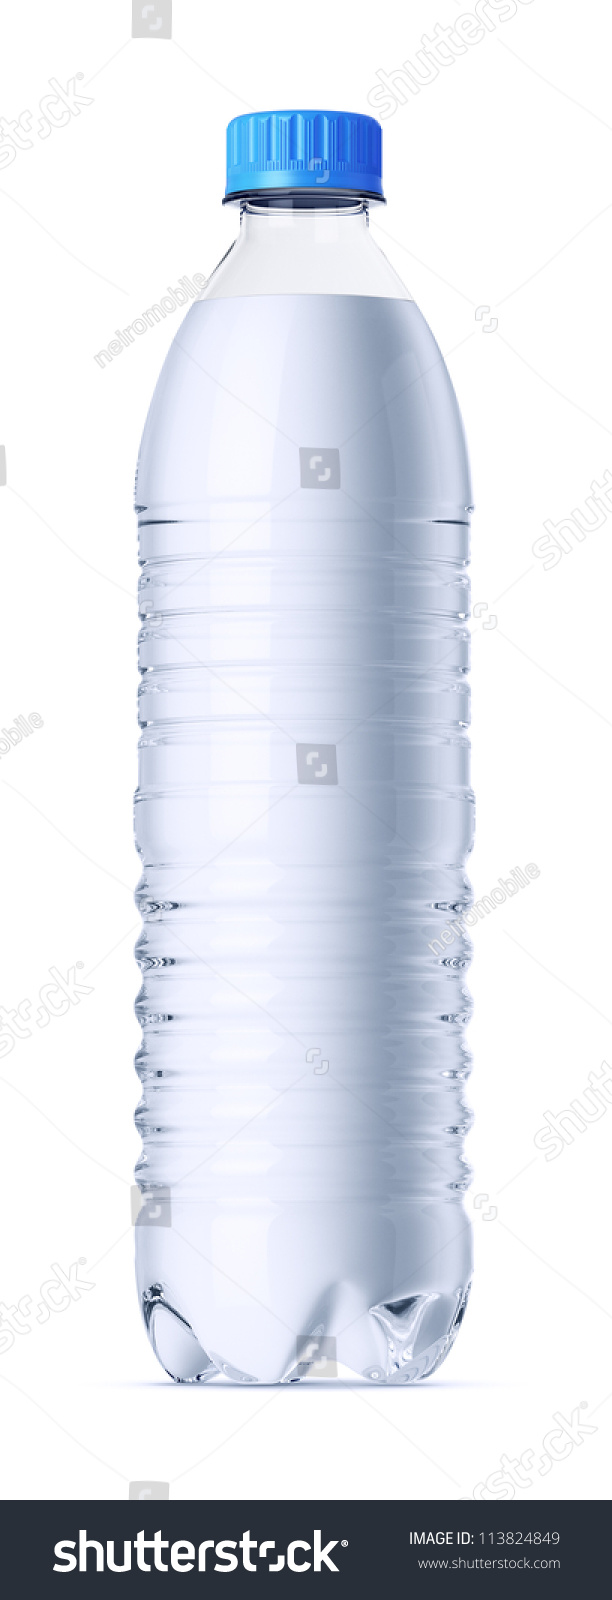 0.6 Liter Plastic Bottle Of Water Without Label. Isolated On White ...